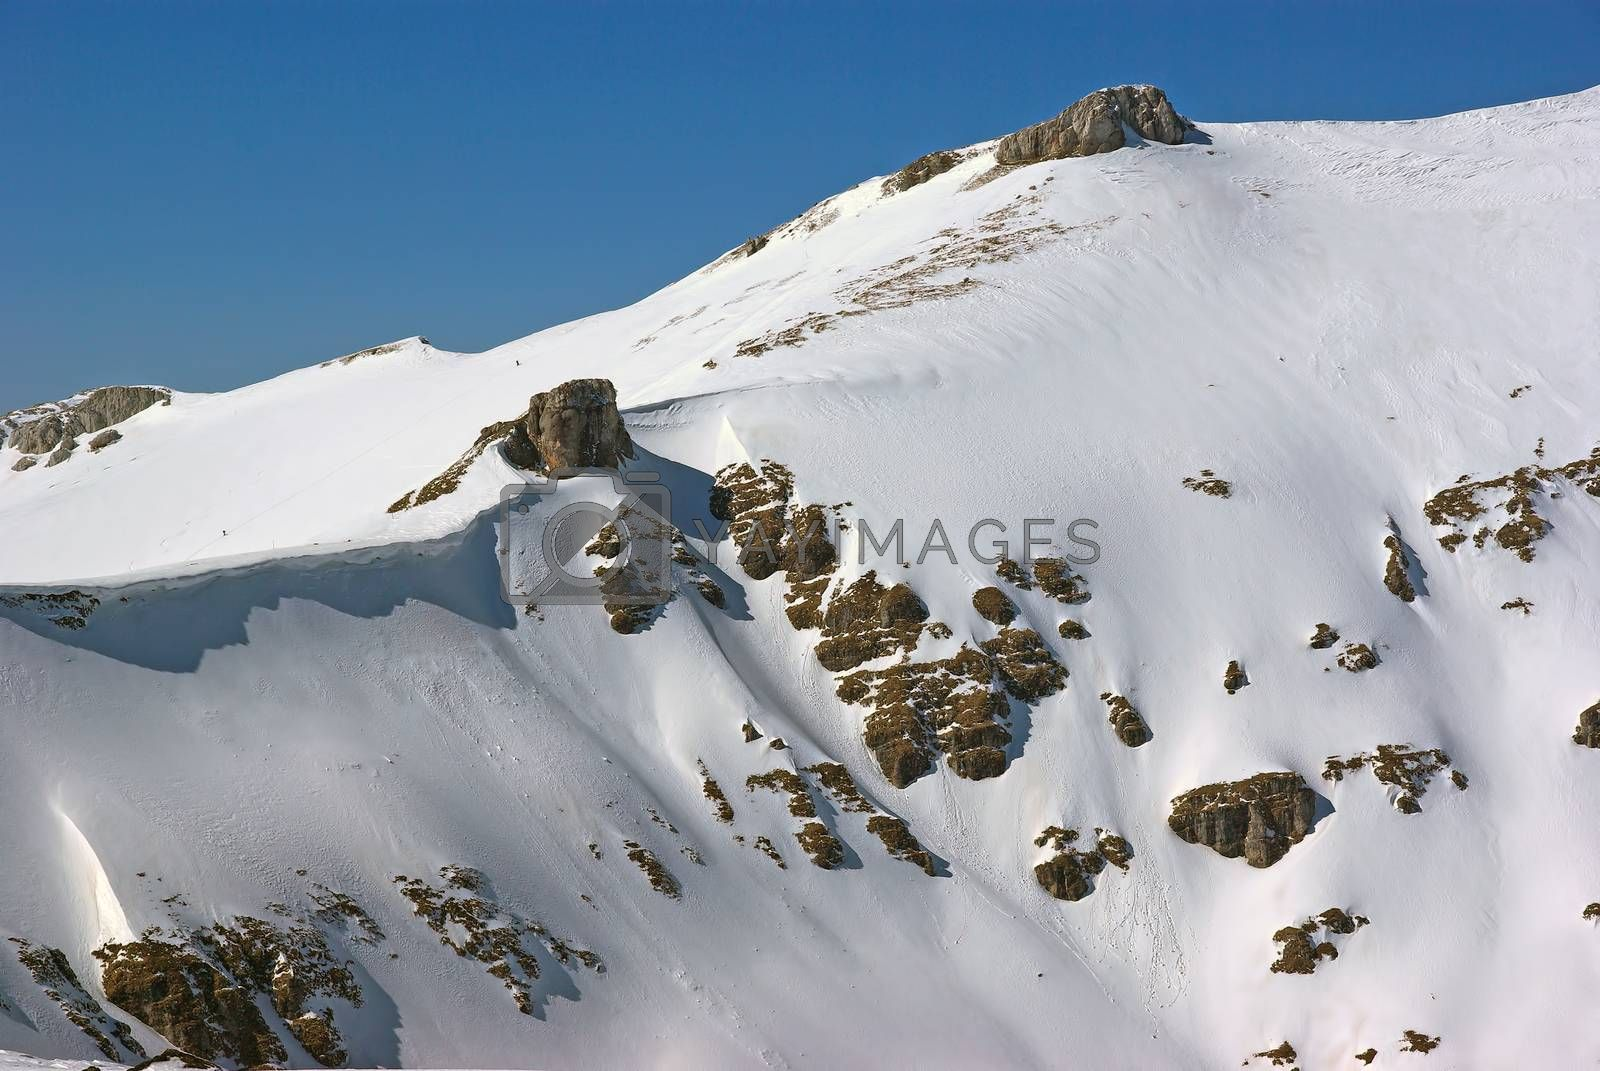 Snow covering the rocky mountain in Romanian Carpathians, winter landscape in a beautiful day